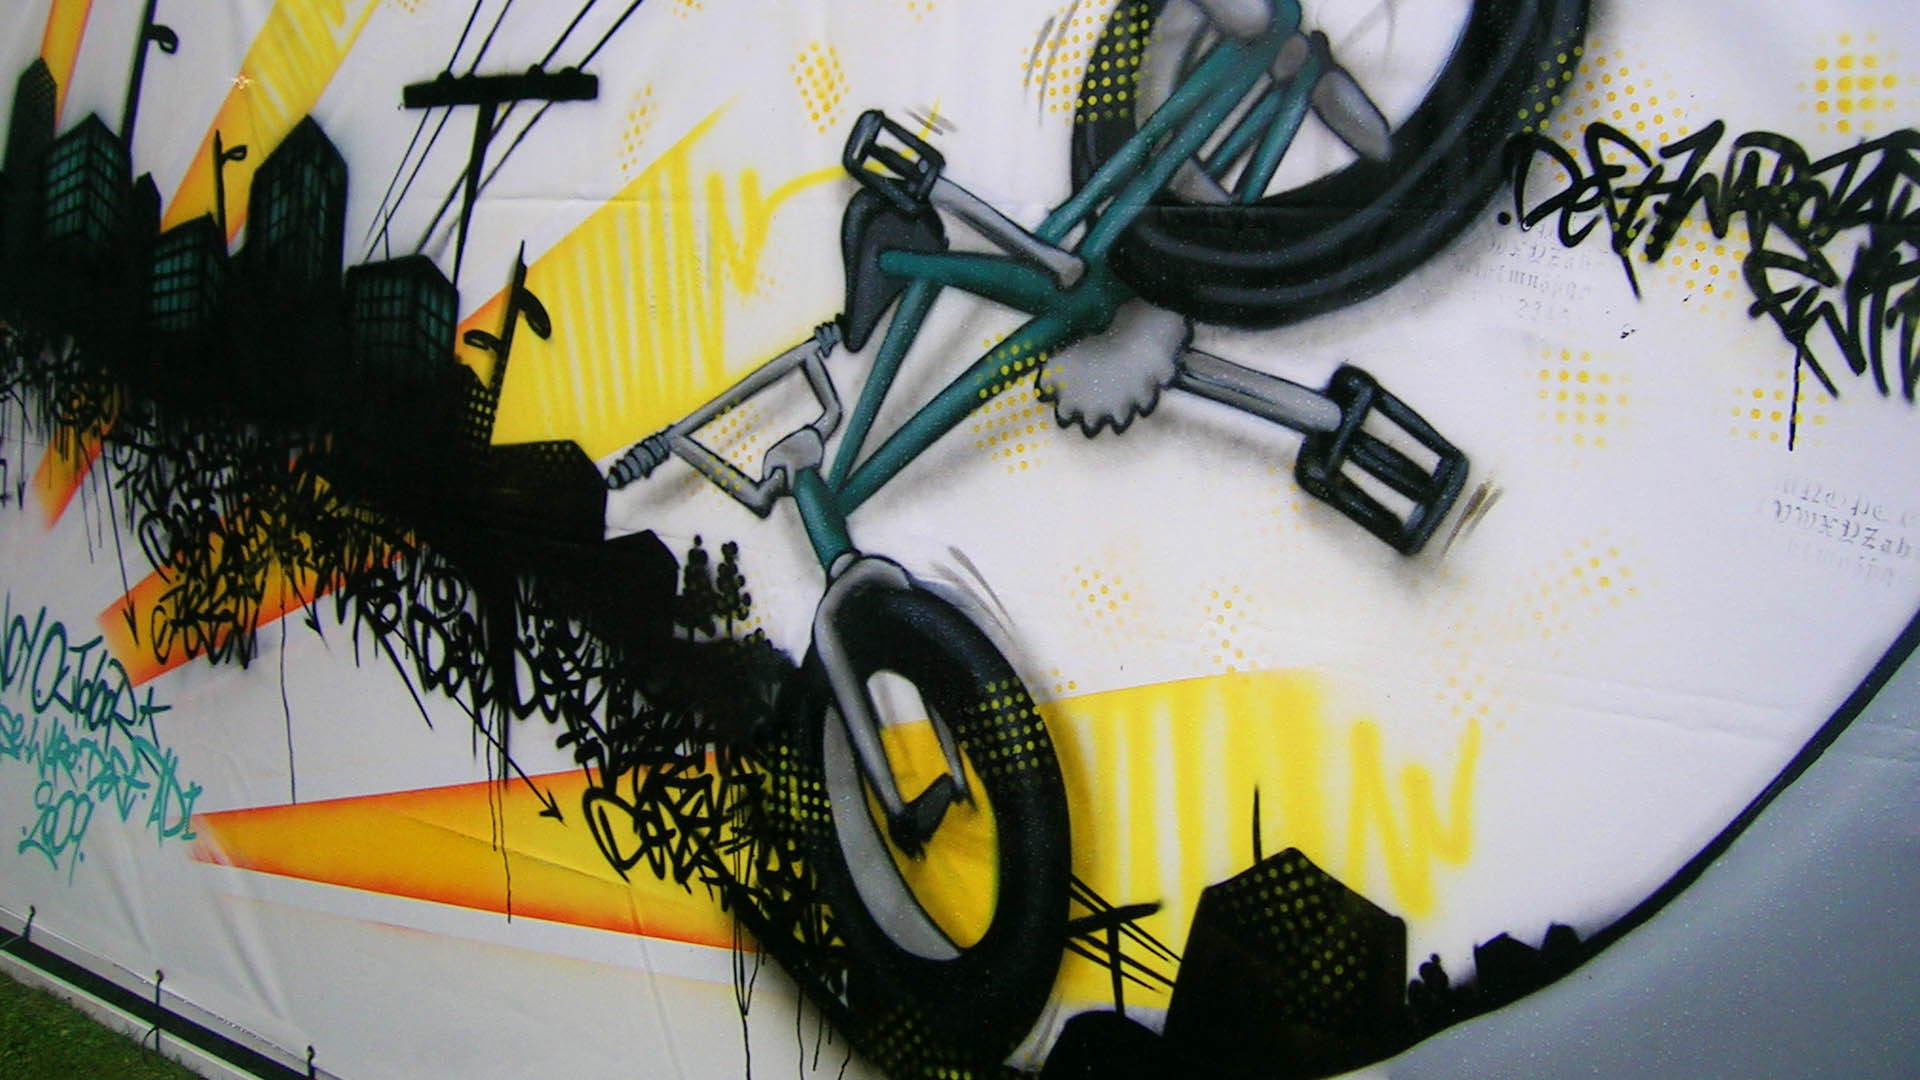 Fresque BMX - Sancy Outdoor - La bourboule